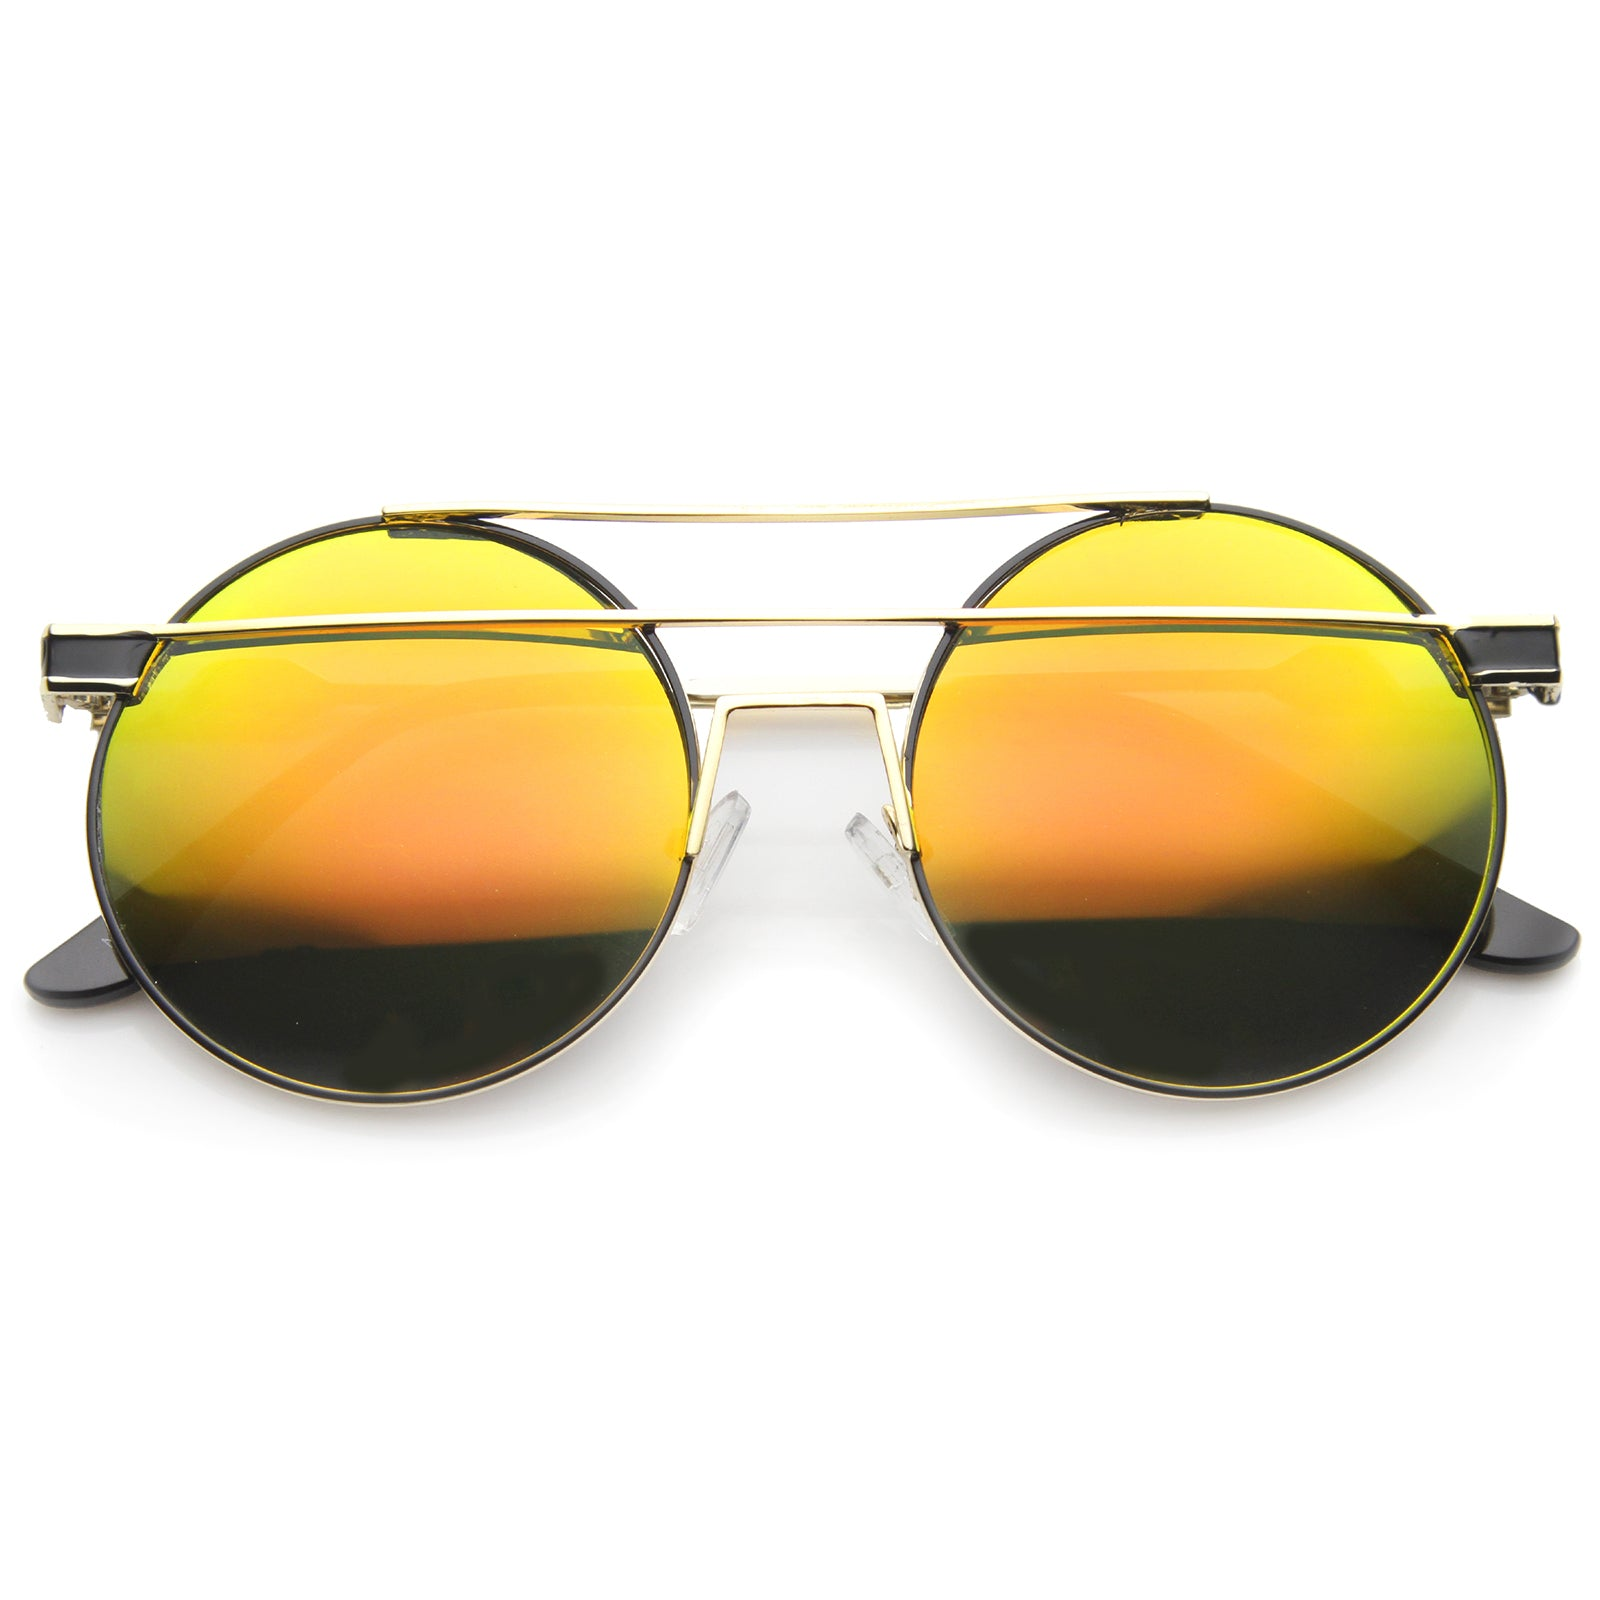 Modern Metal Frame Double Bridge Colored Mirror Lens Round Sunglasses 59mm - sunglass.la - 9